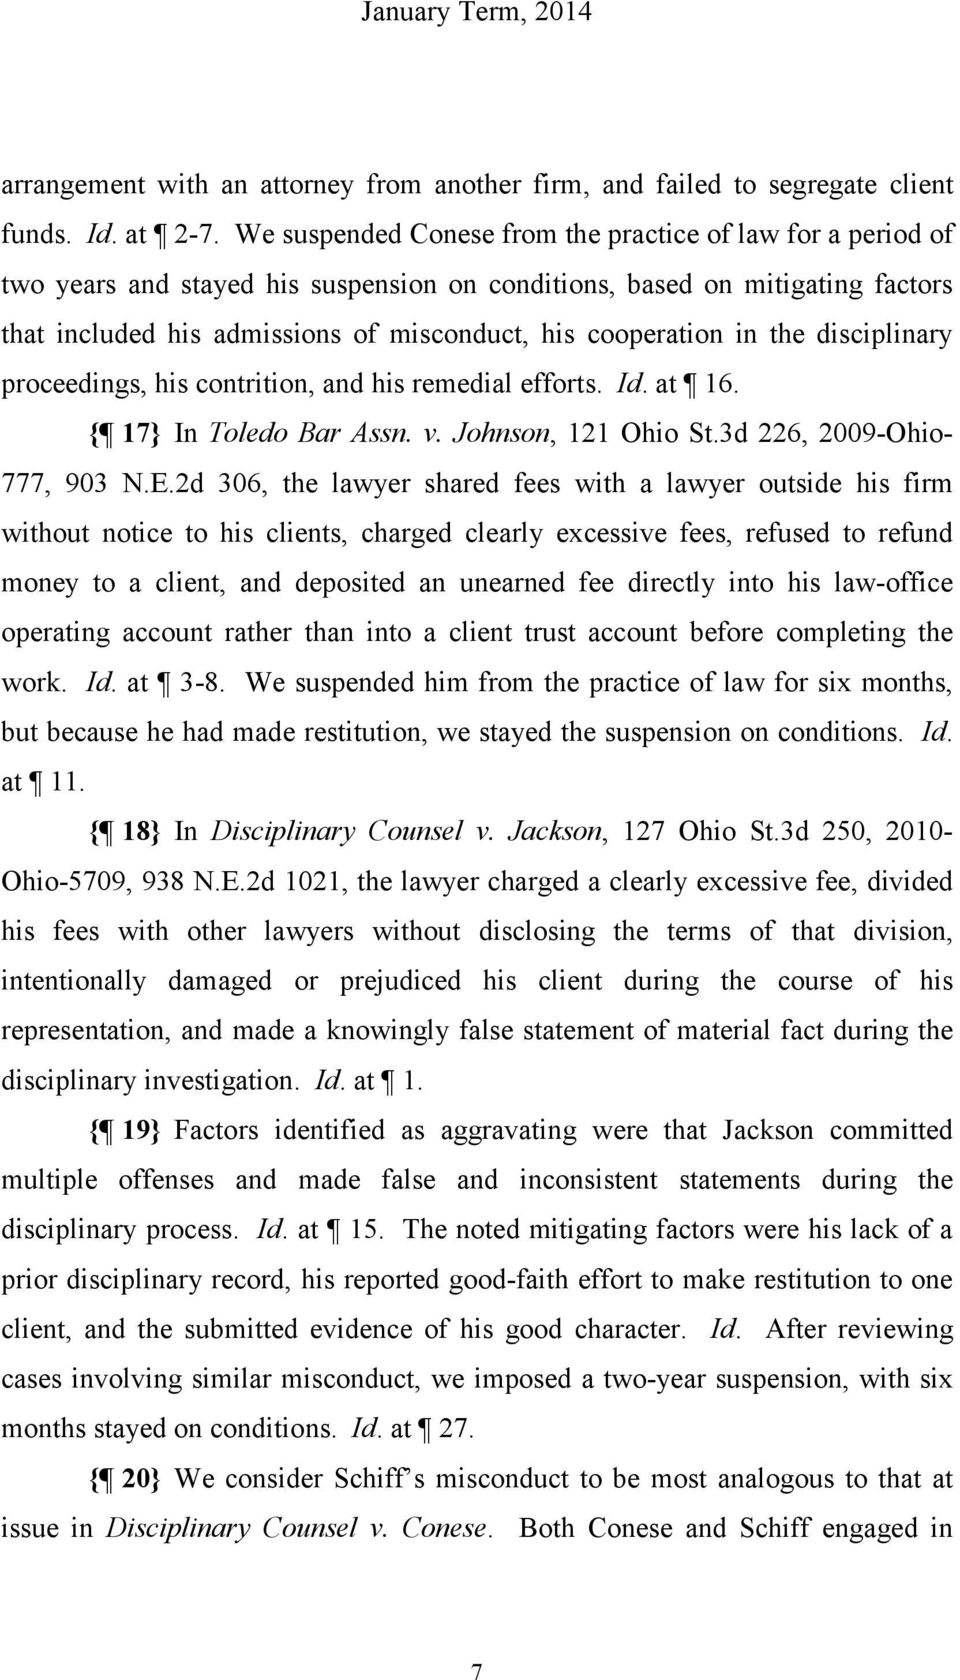 in the disciplinary proceedings, his contrition, and his remedial efforts. Id. at 16. { 17} In Toledo Bar Assn. v. Johnson, 121 Ohio St.3d 226, 2009-Ohio- 777, 903 N.E.